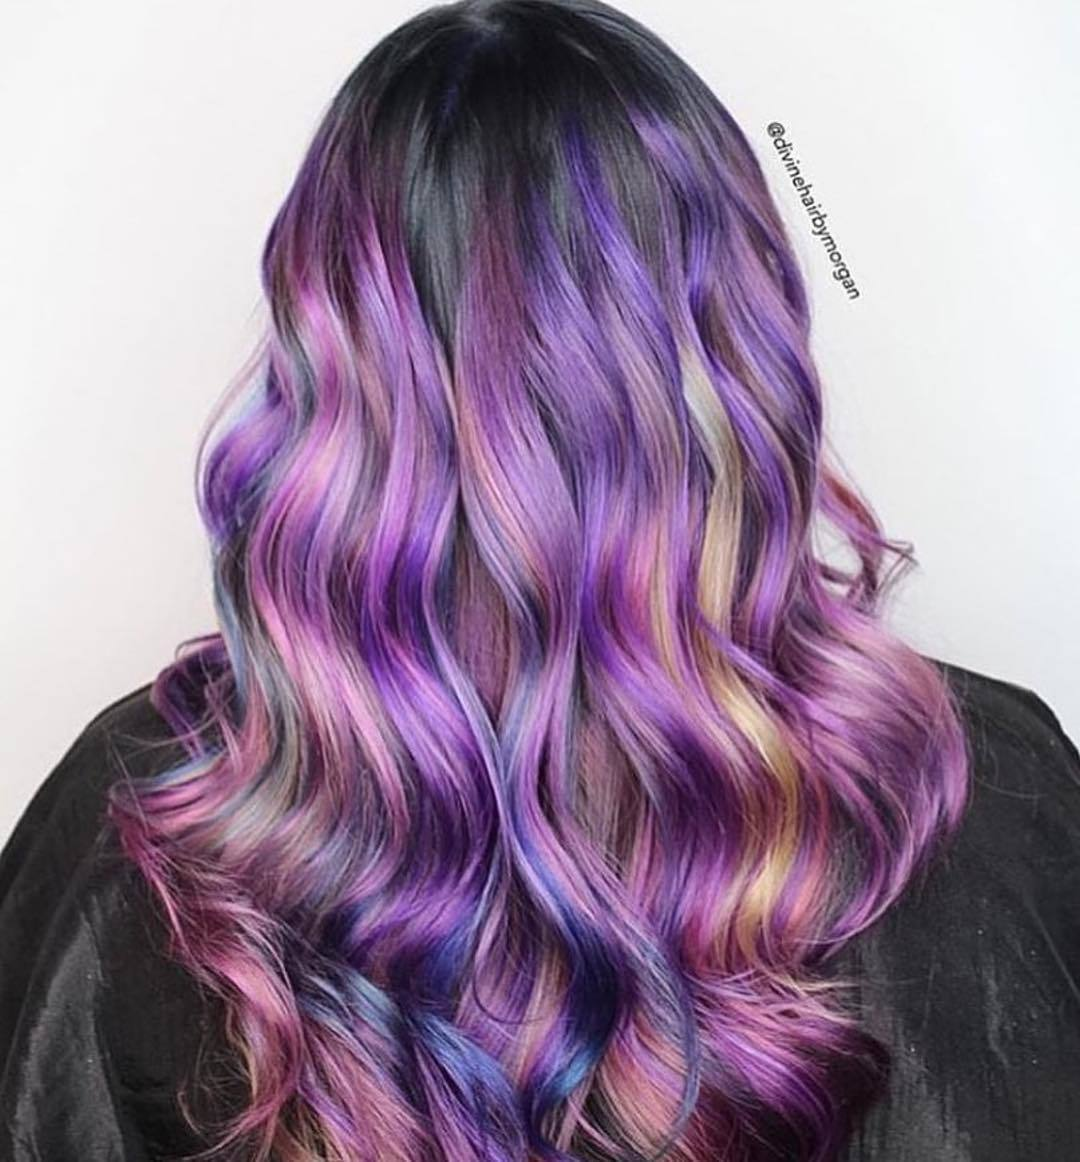 amethyst and blonde streaks